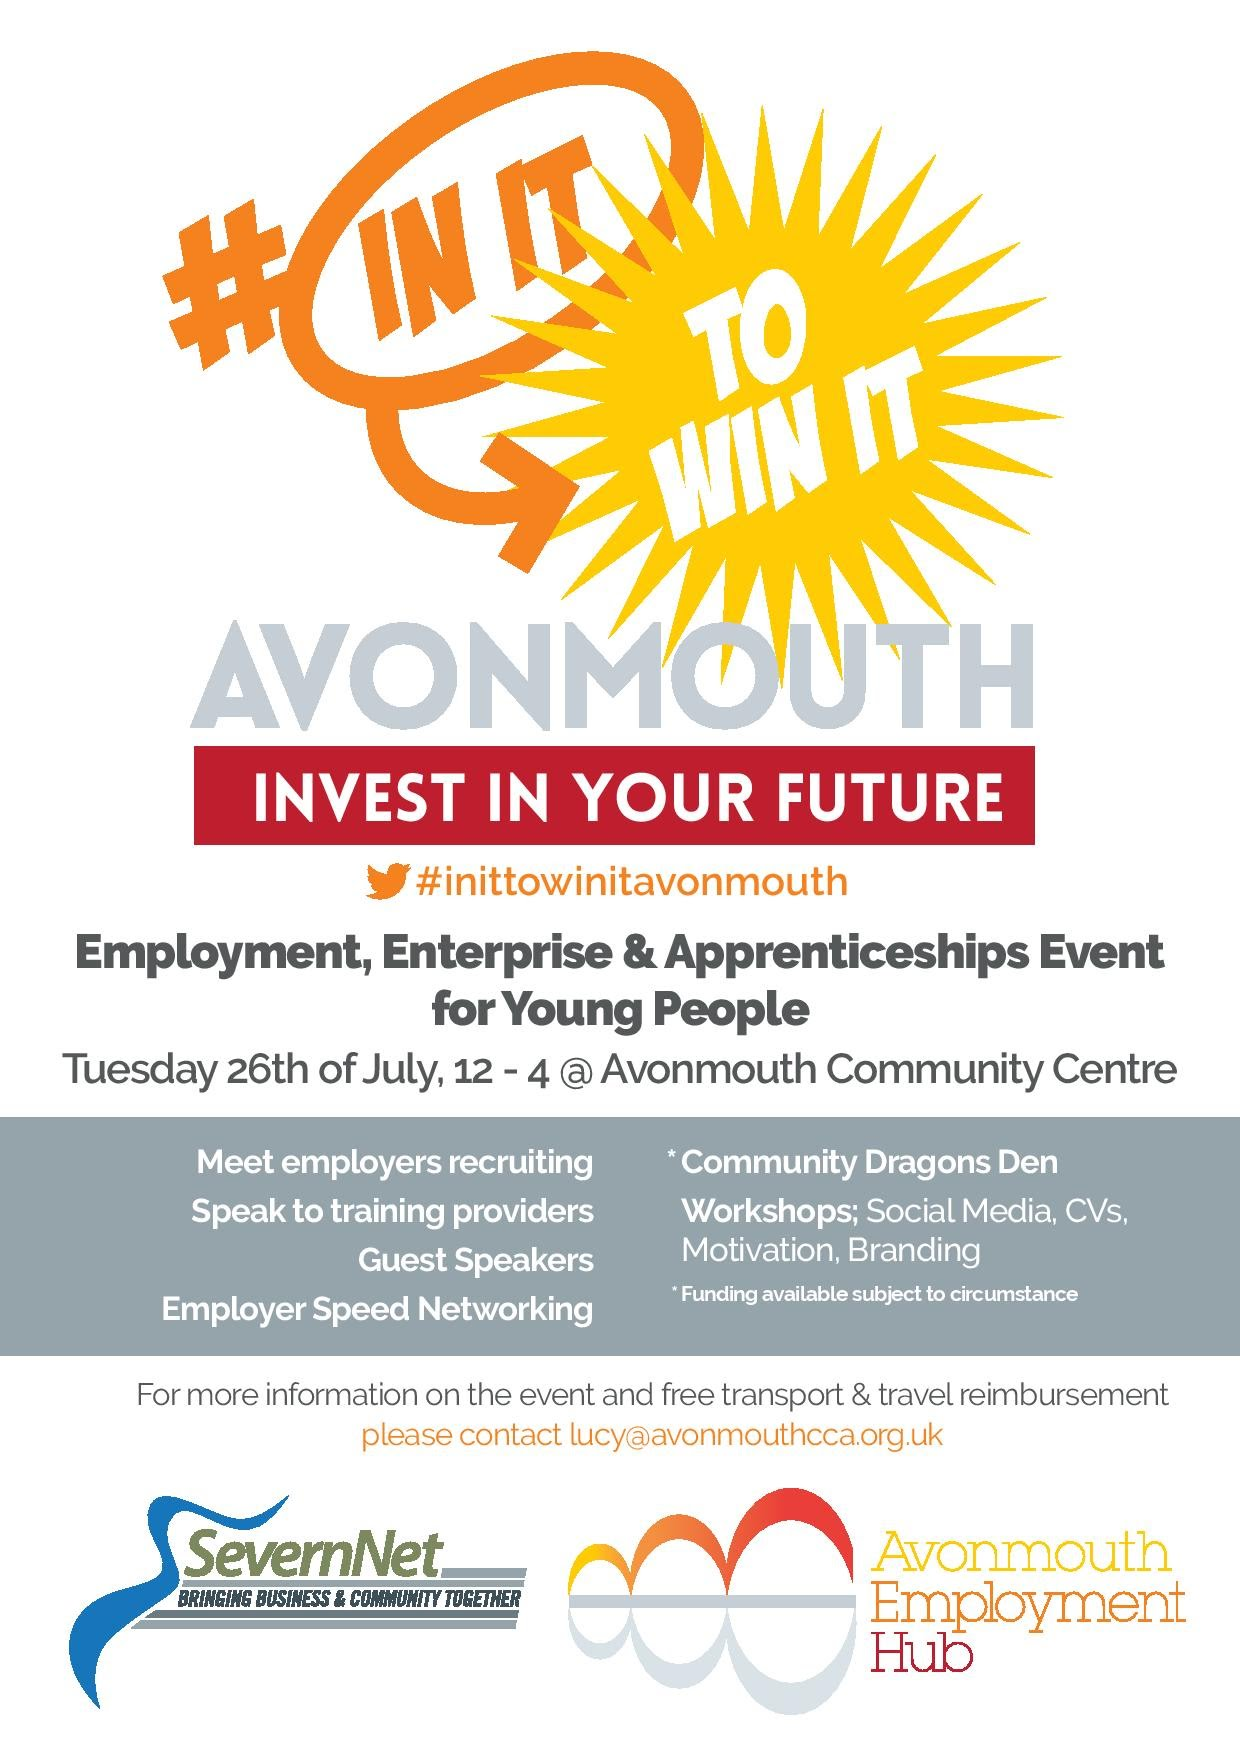 Youth Employment Event 18-24 Free Food, Free Trasport & Free AdviceAAA